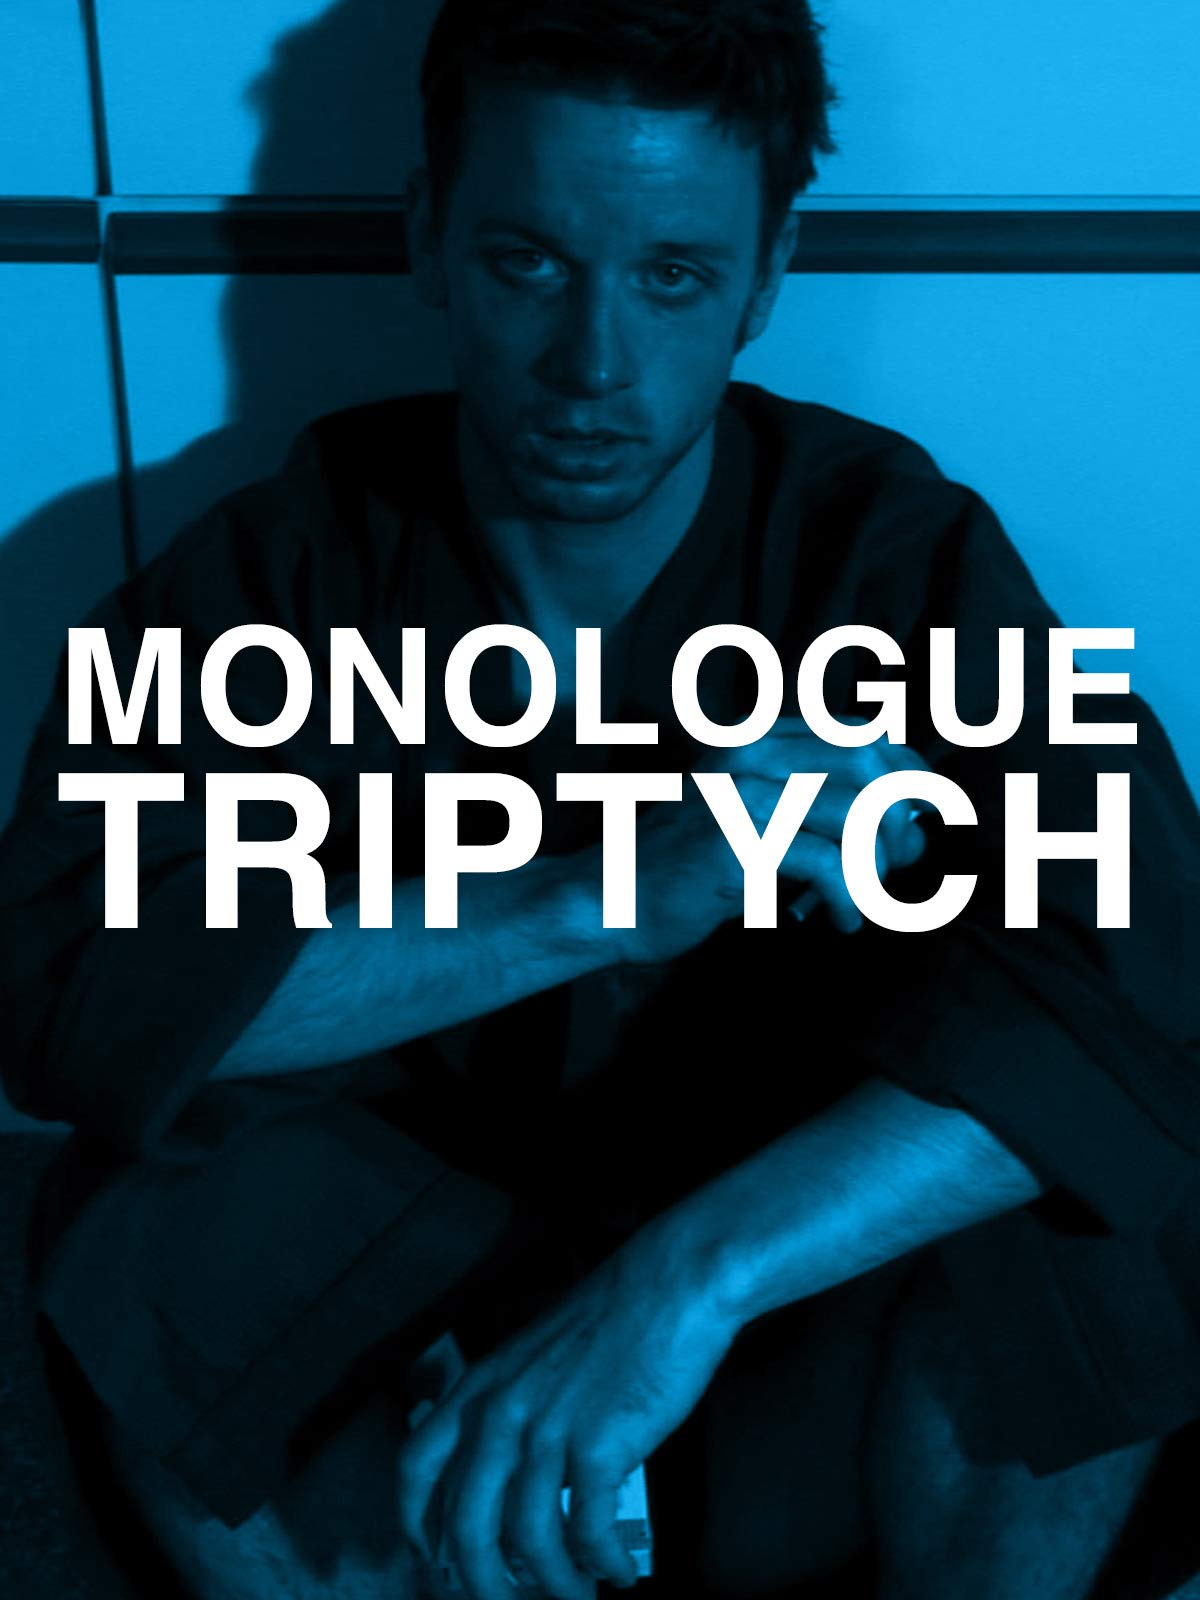 Monologue Triptych